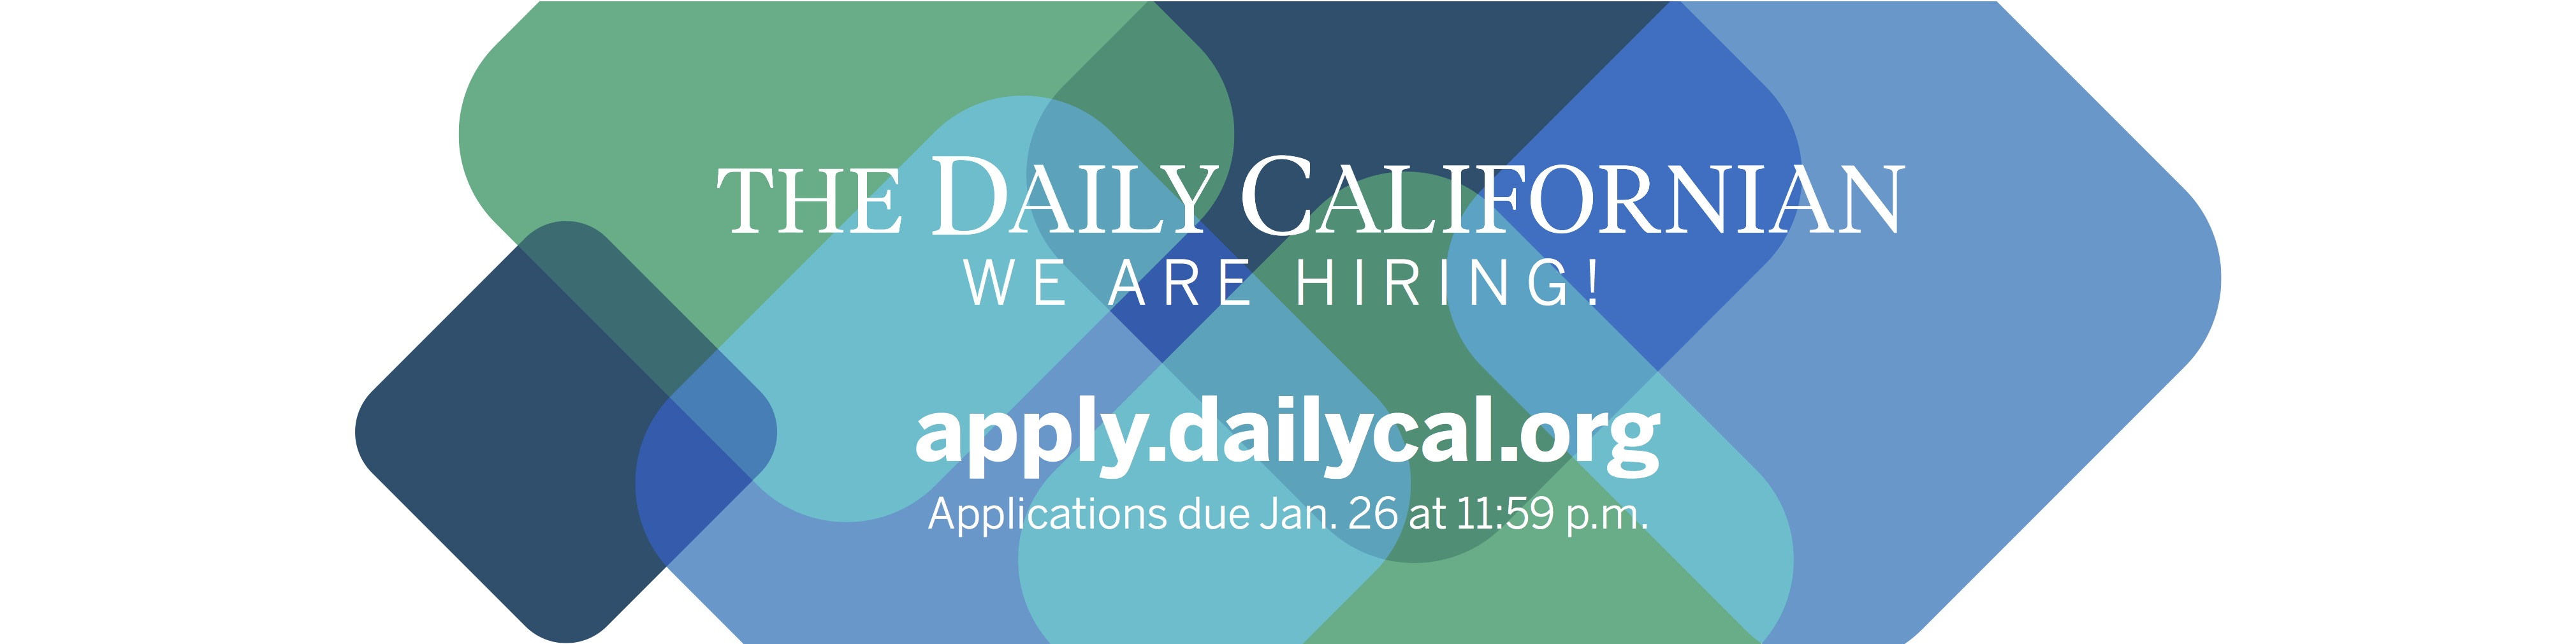 The Daily Californian is hiring! Apply today at apply.dailycal.org.